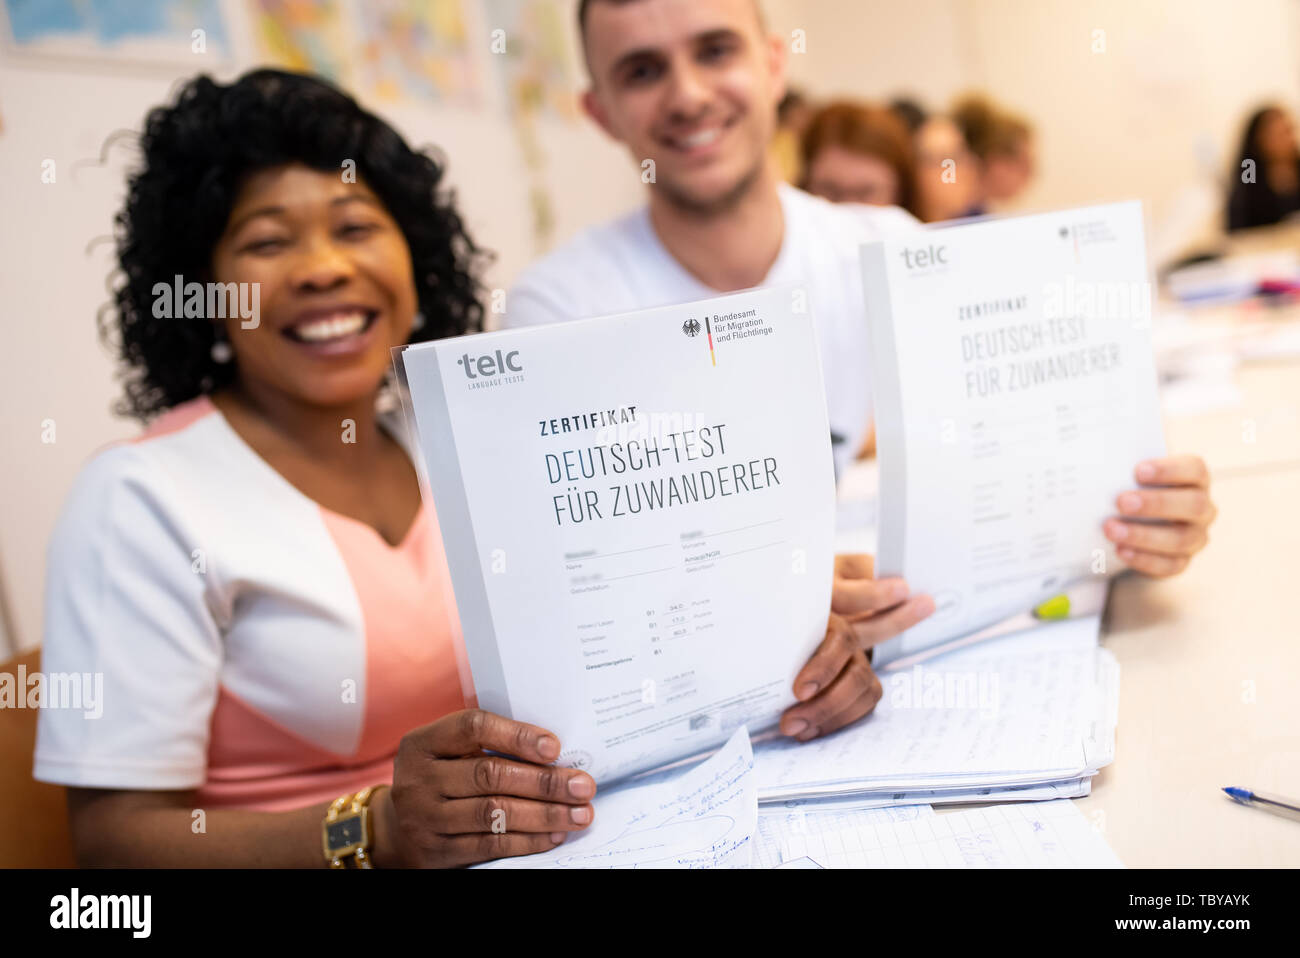 Munich, Germany. 04th June, 2019. Angela Nwaubani from Nigeria and Enver Latifi from Kosovo are happy about their certificates 'Deutsch-Test für Zuwanderer' (German test for immigrants) which they received for their successful participation in an integration course for immigrants of the Federal Office for Migration (BAMF). Credit: Sven Hoppe/dpa - ATTENTION: Names written out in the picture pixeled for legal reasons/dpa/Alamy Live News - Stock Image